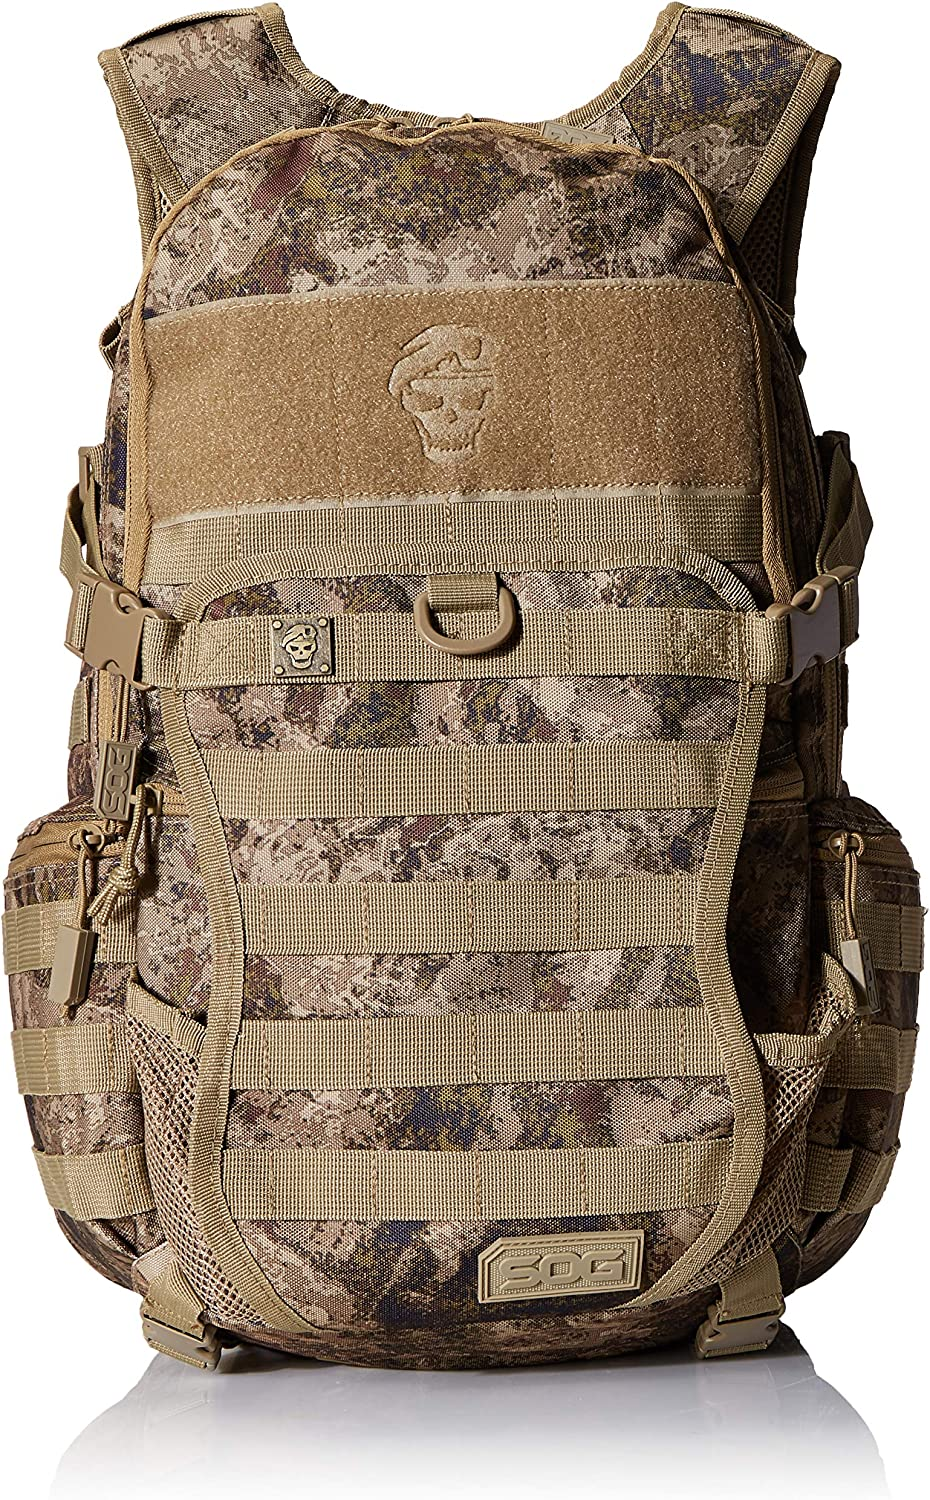 SOG Opord Tactical Day Pack, 39.1-Liter Storage bag, brown color with velcro patch holder on front.